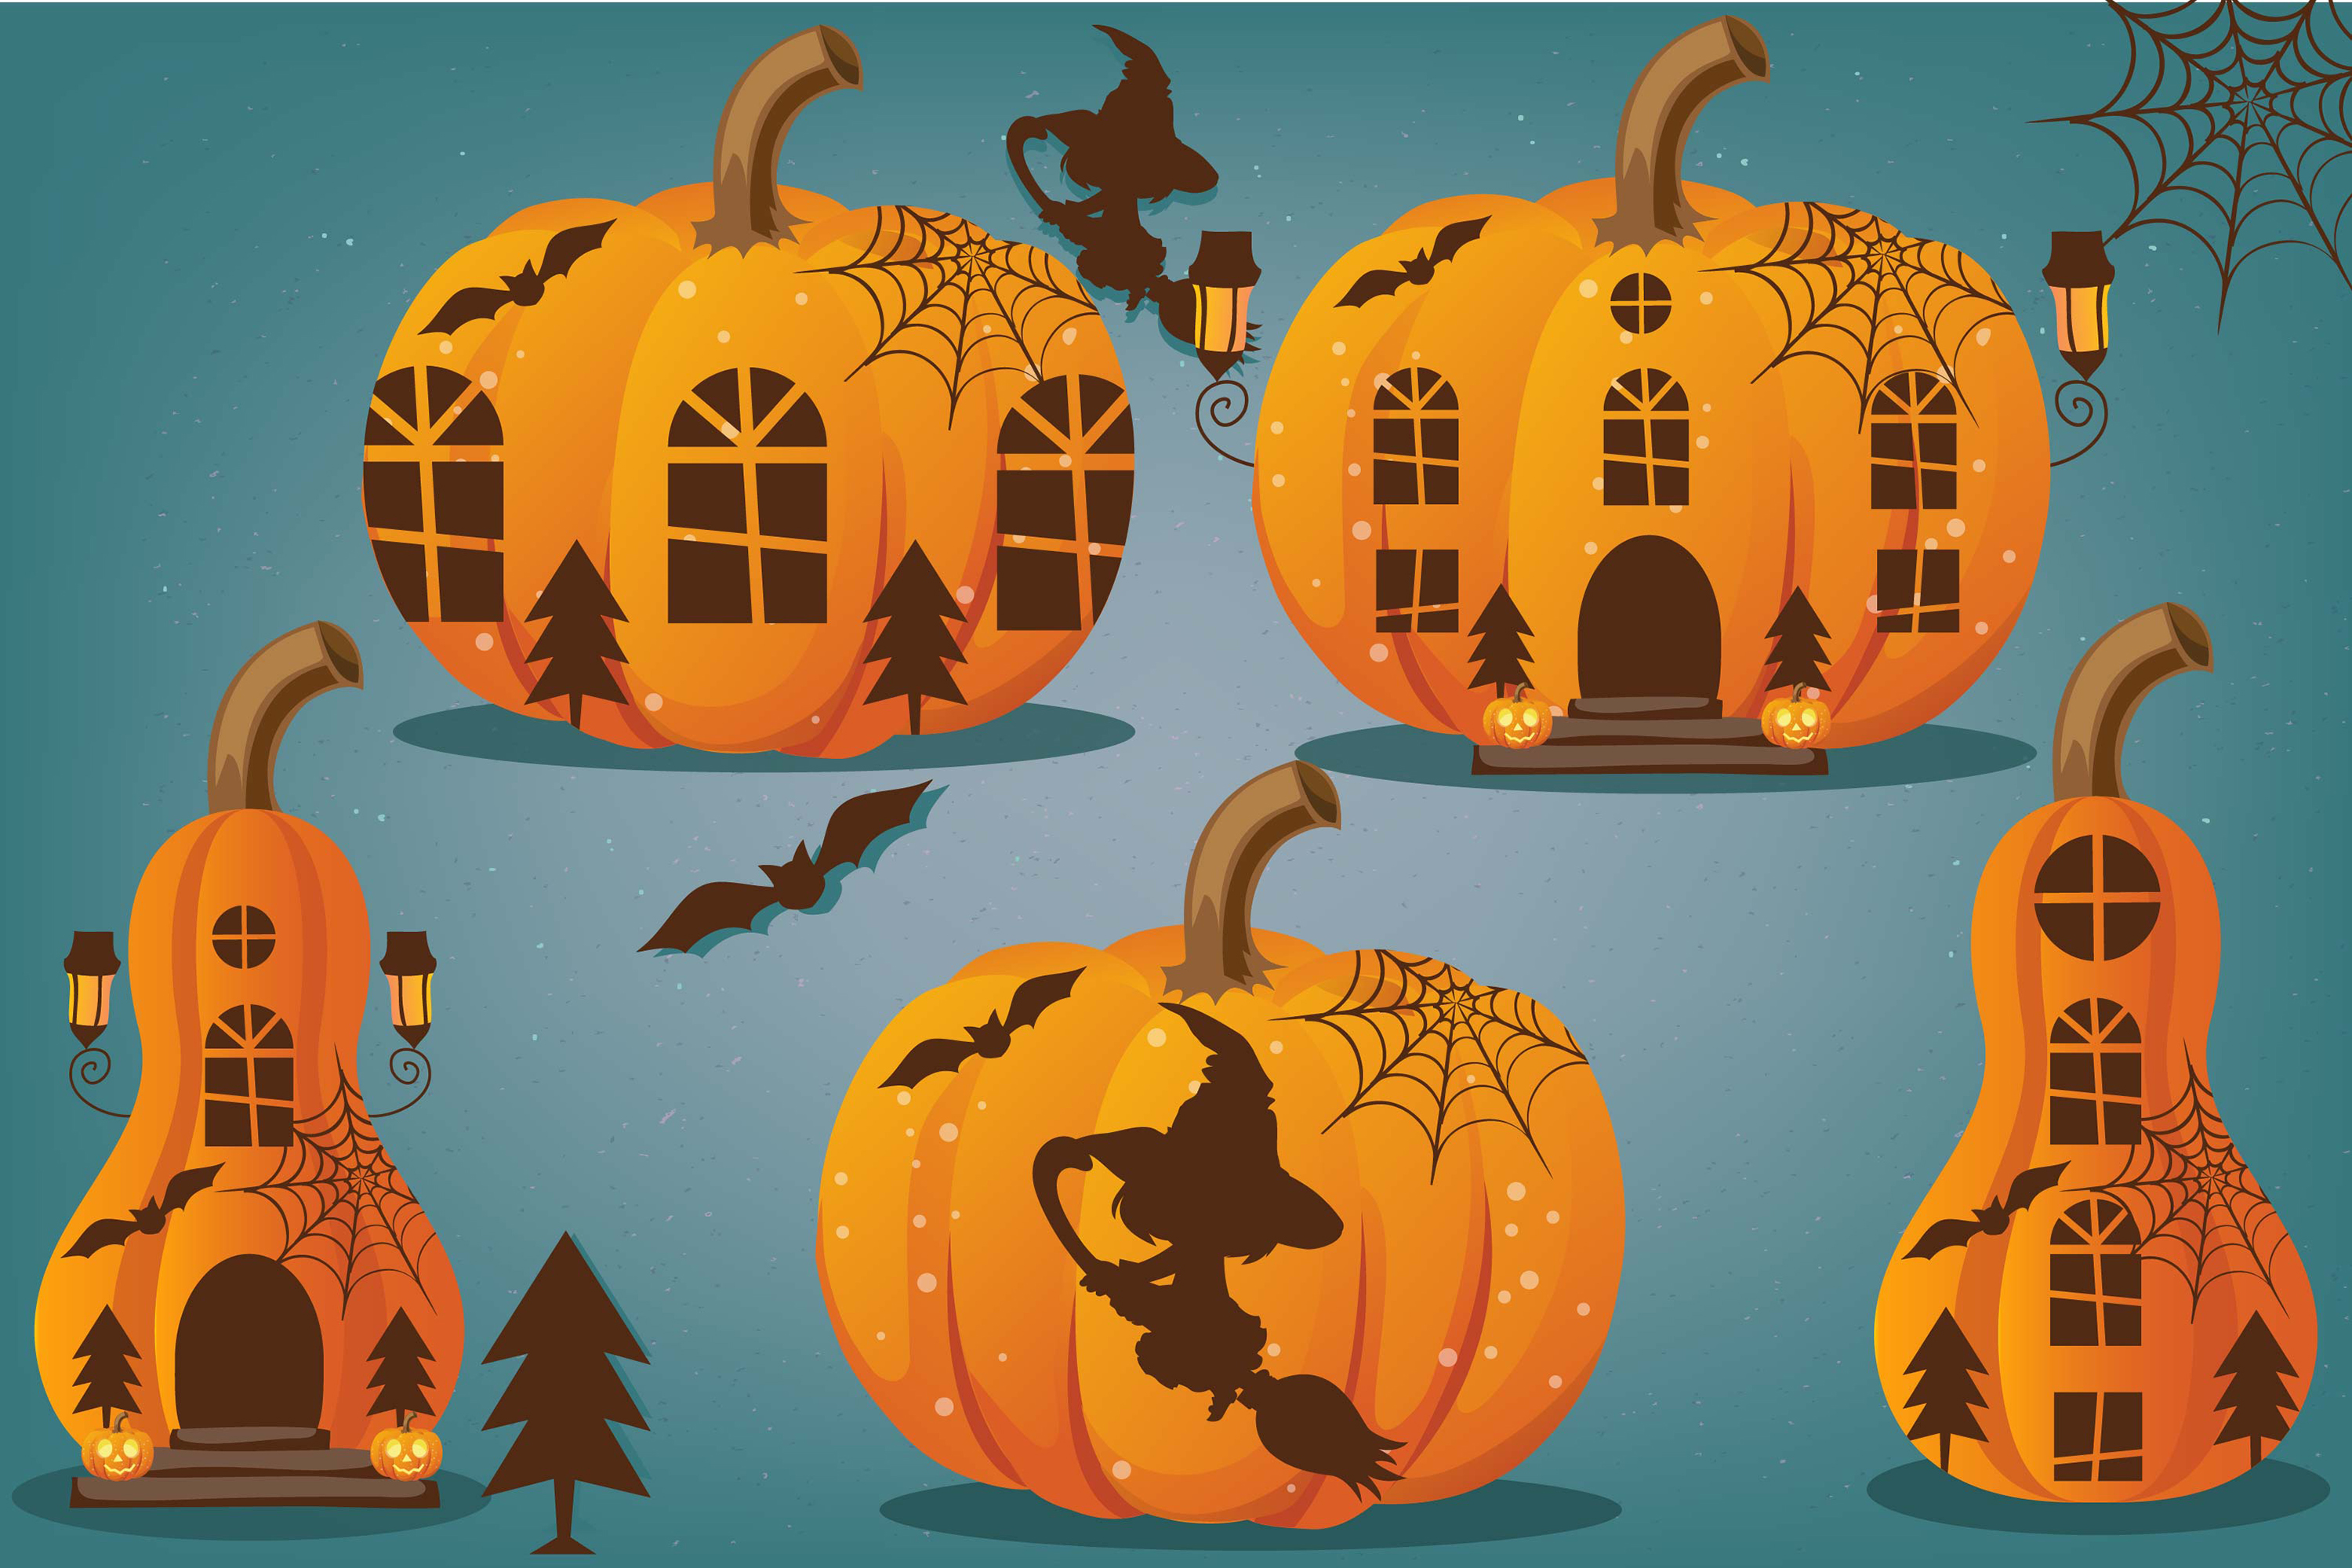 Halloween bundle, Halloween illustrations, Halloween pumpkin example image 3